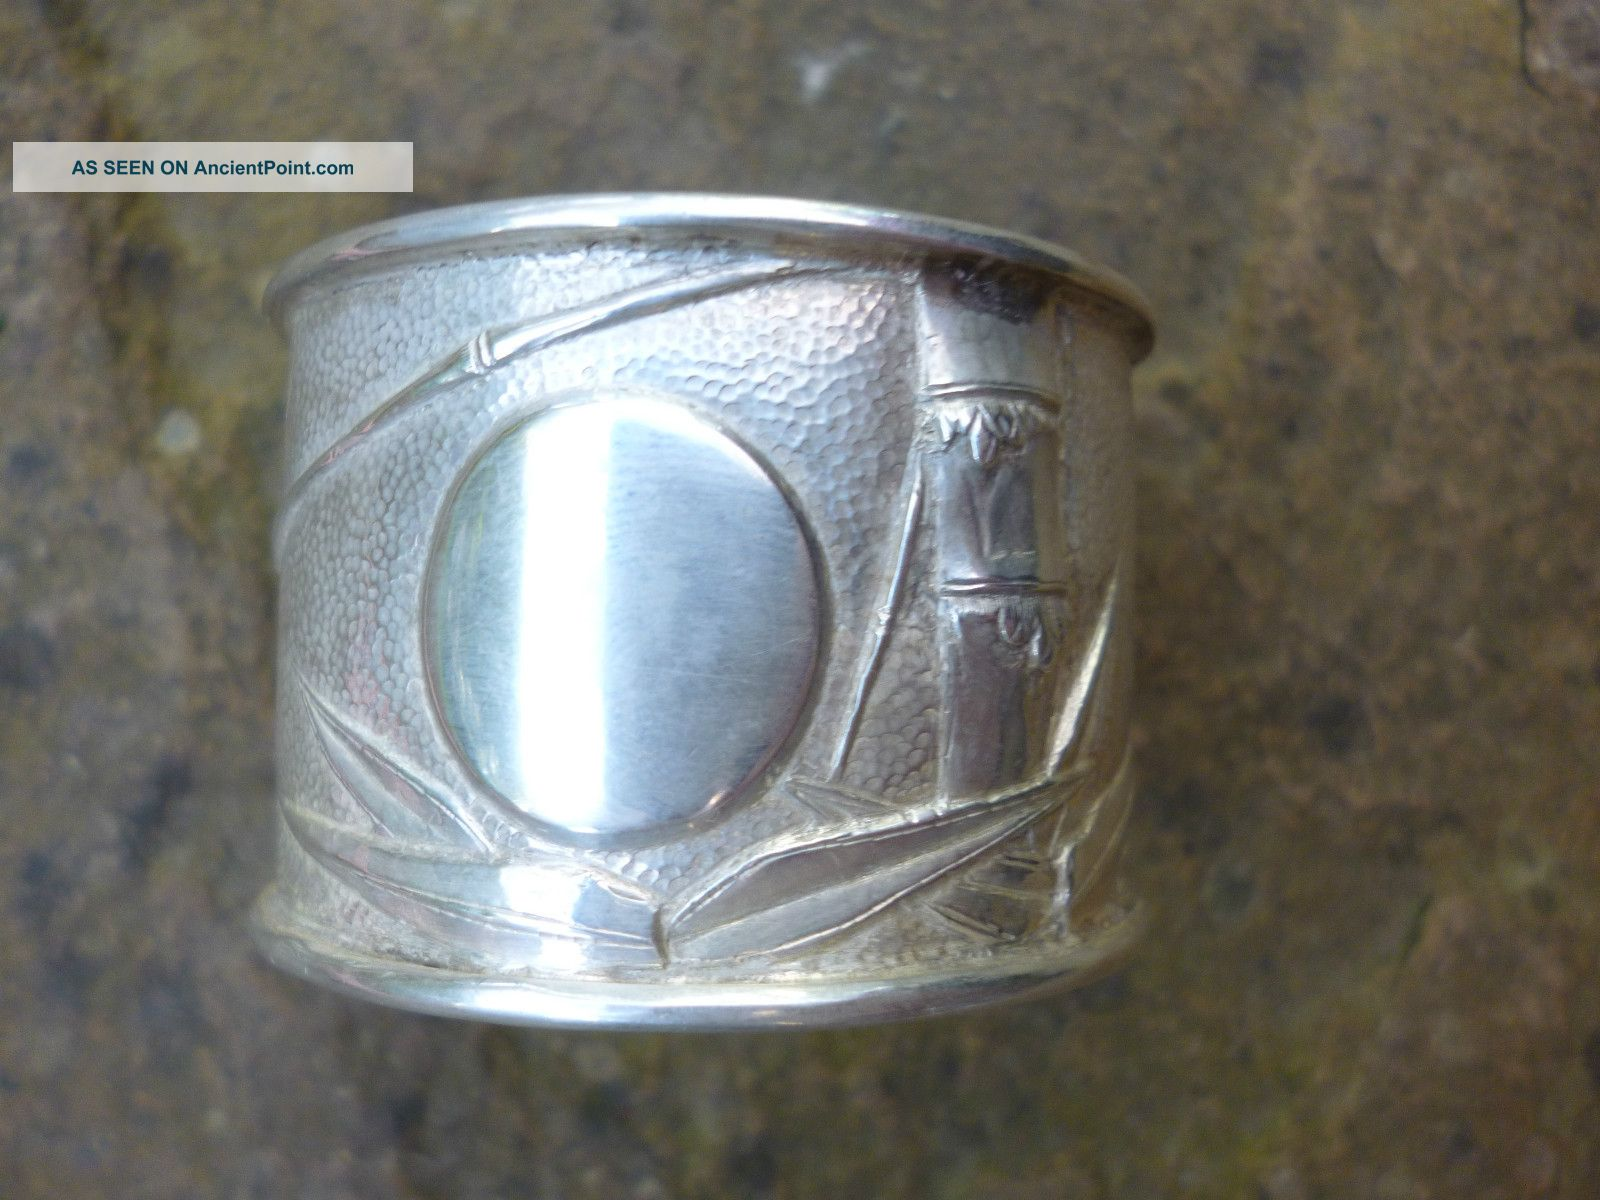 Fine Quality Chinese Silver Napkin Ring - Zee Wo,  Shanghai Circa 1900 Napkin Rings & Clips photo